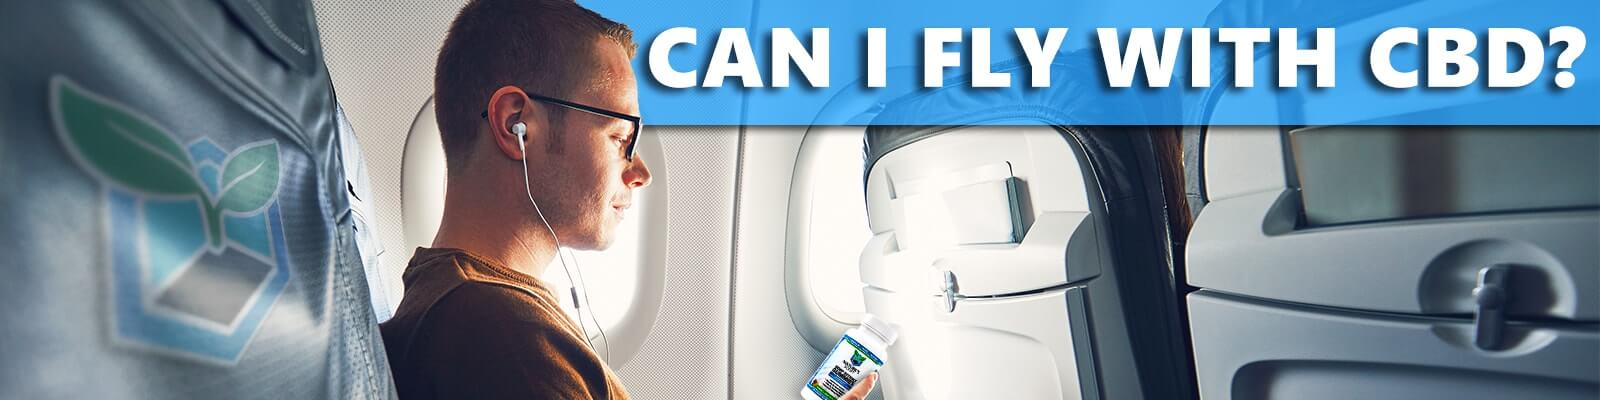 can I fly with cbd | cbd for flight anxiety